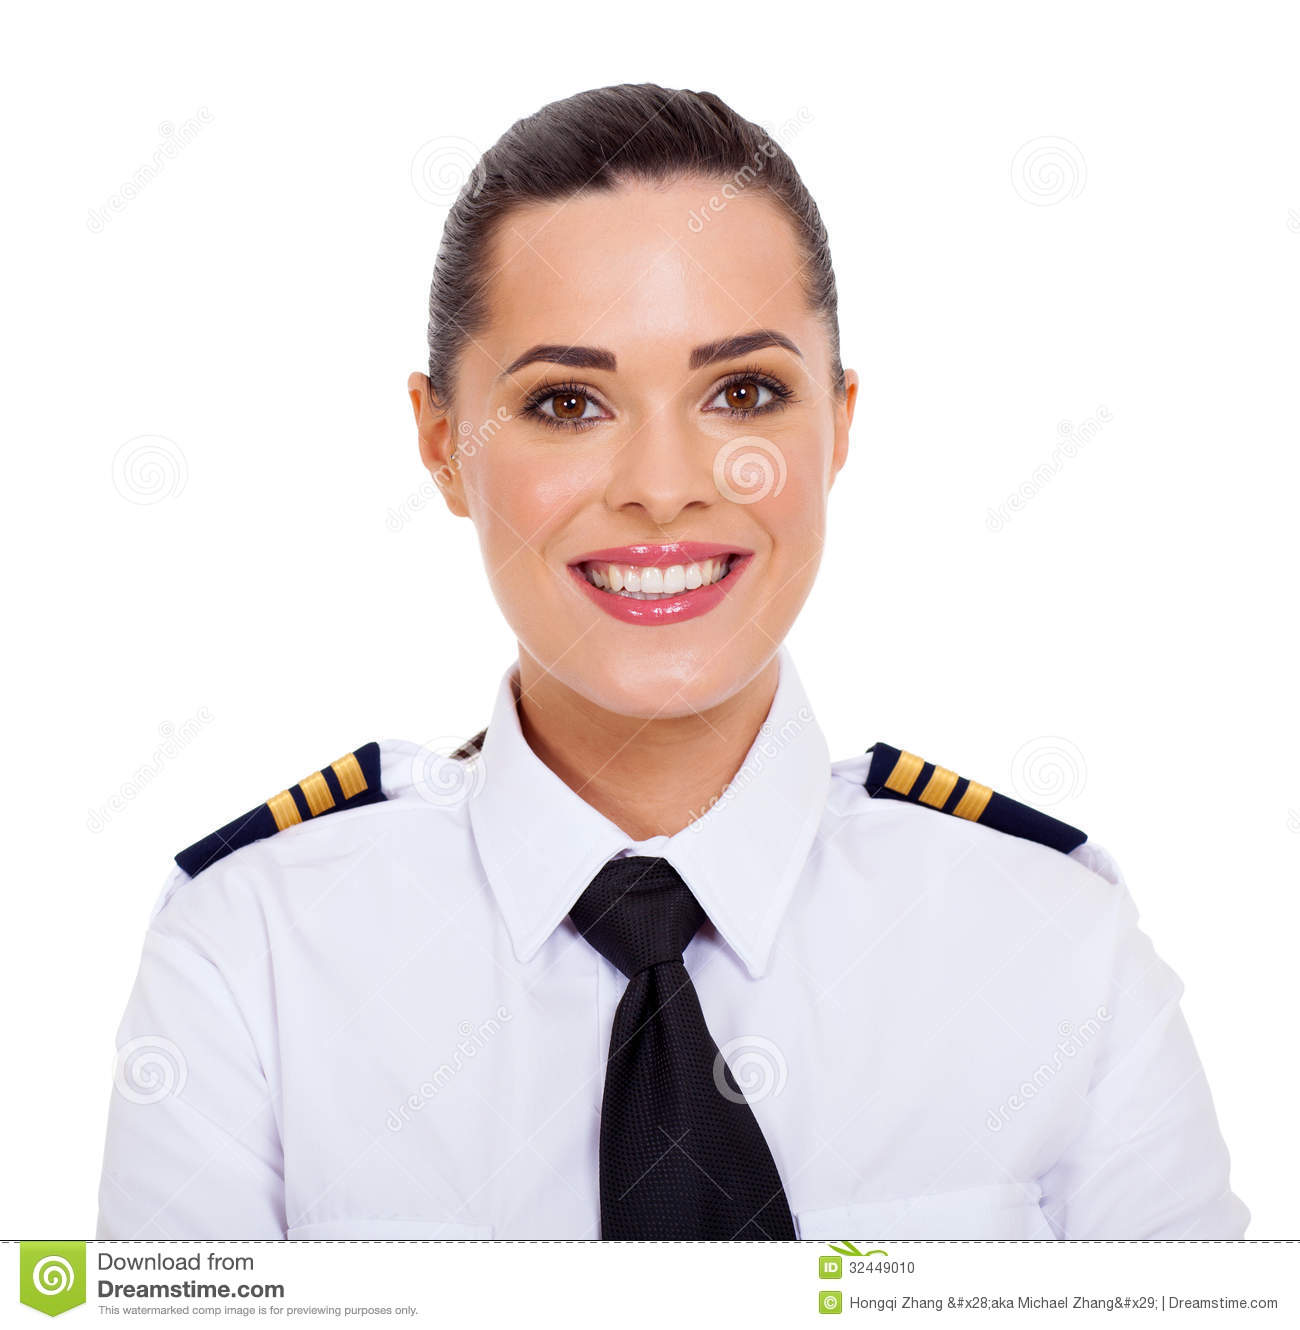 Female airline pilot stock photo. Image of half, cheerful ...